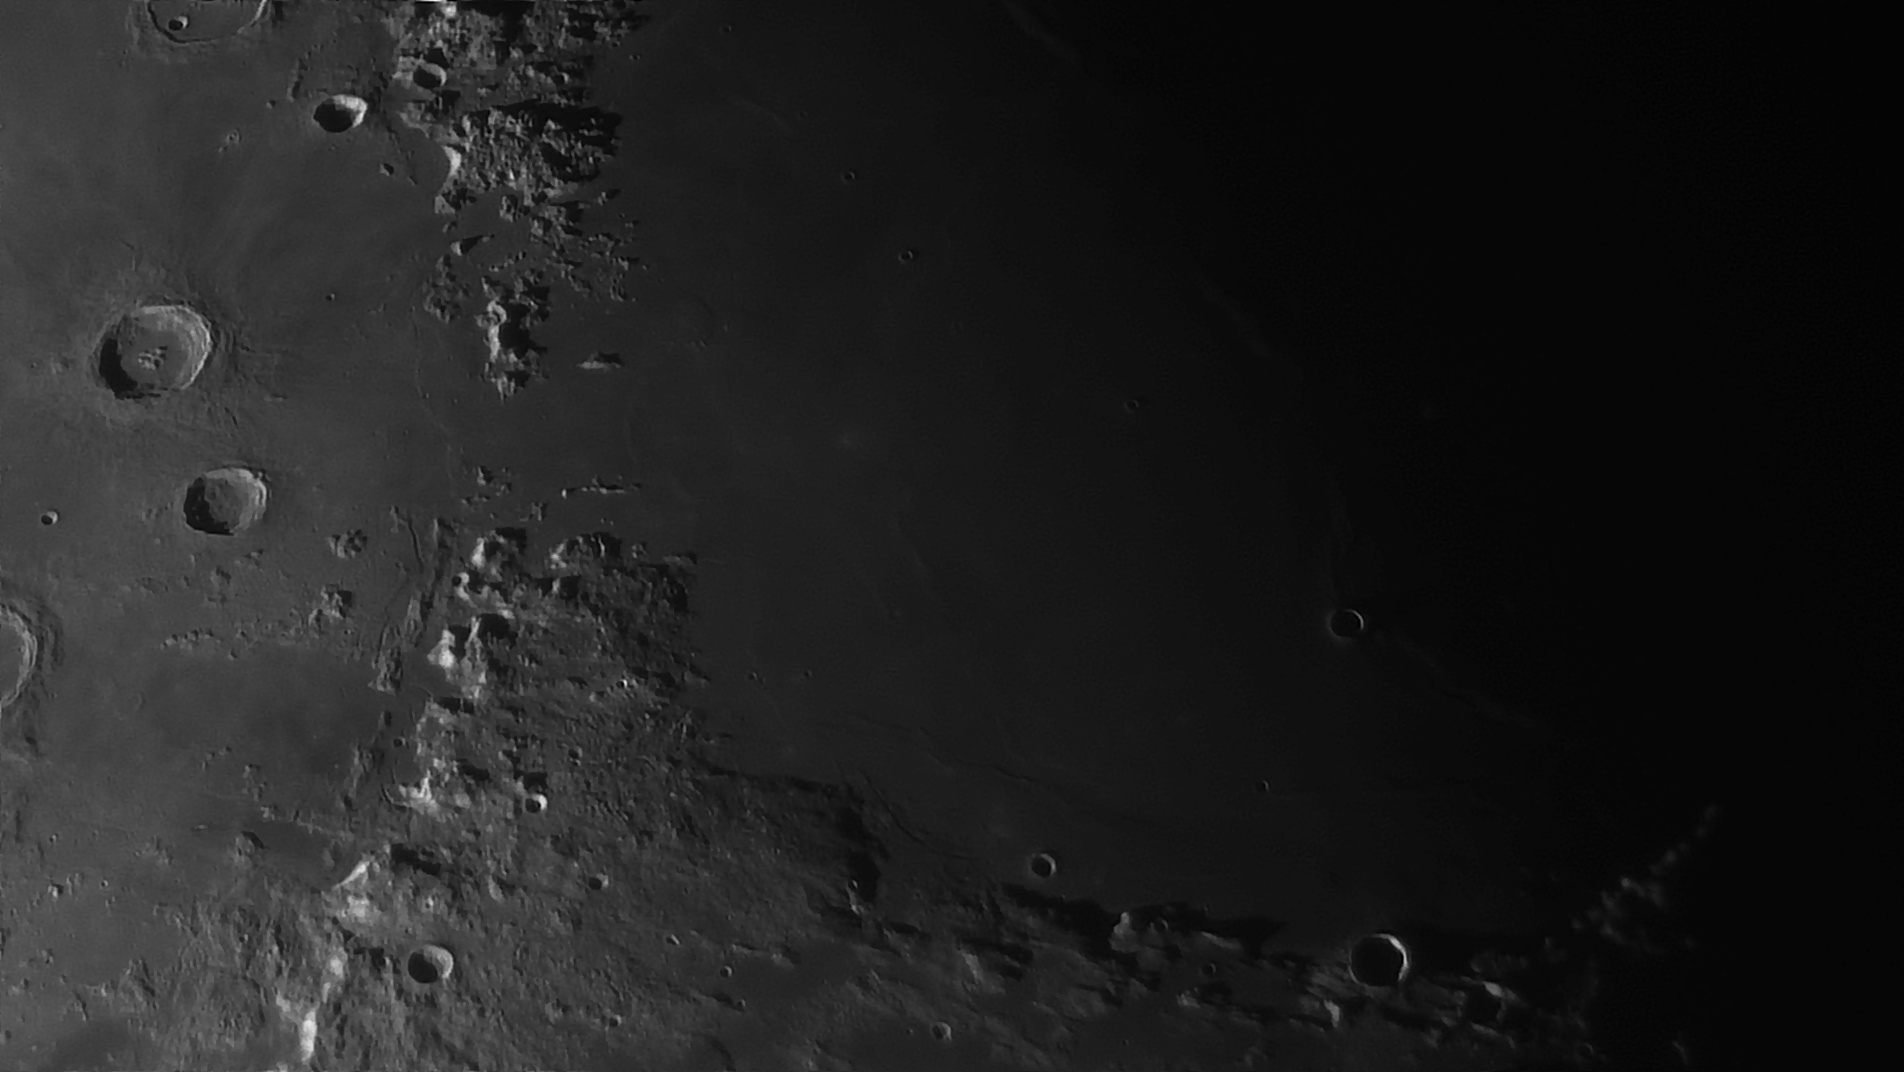 5e51952696797_Moon_055025_160120_ZWOASI290MM_Rouge_23A_AS_P35_lapl6_ap713_AI_Deconvolution_8--.jpg.1b5b043a1025d6db67b0f45cfbde01e7.jpg